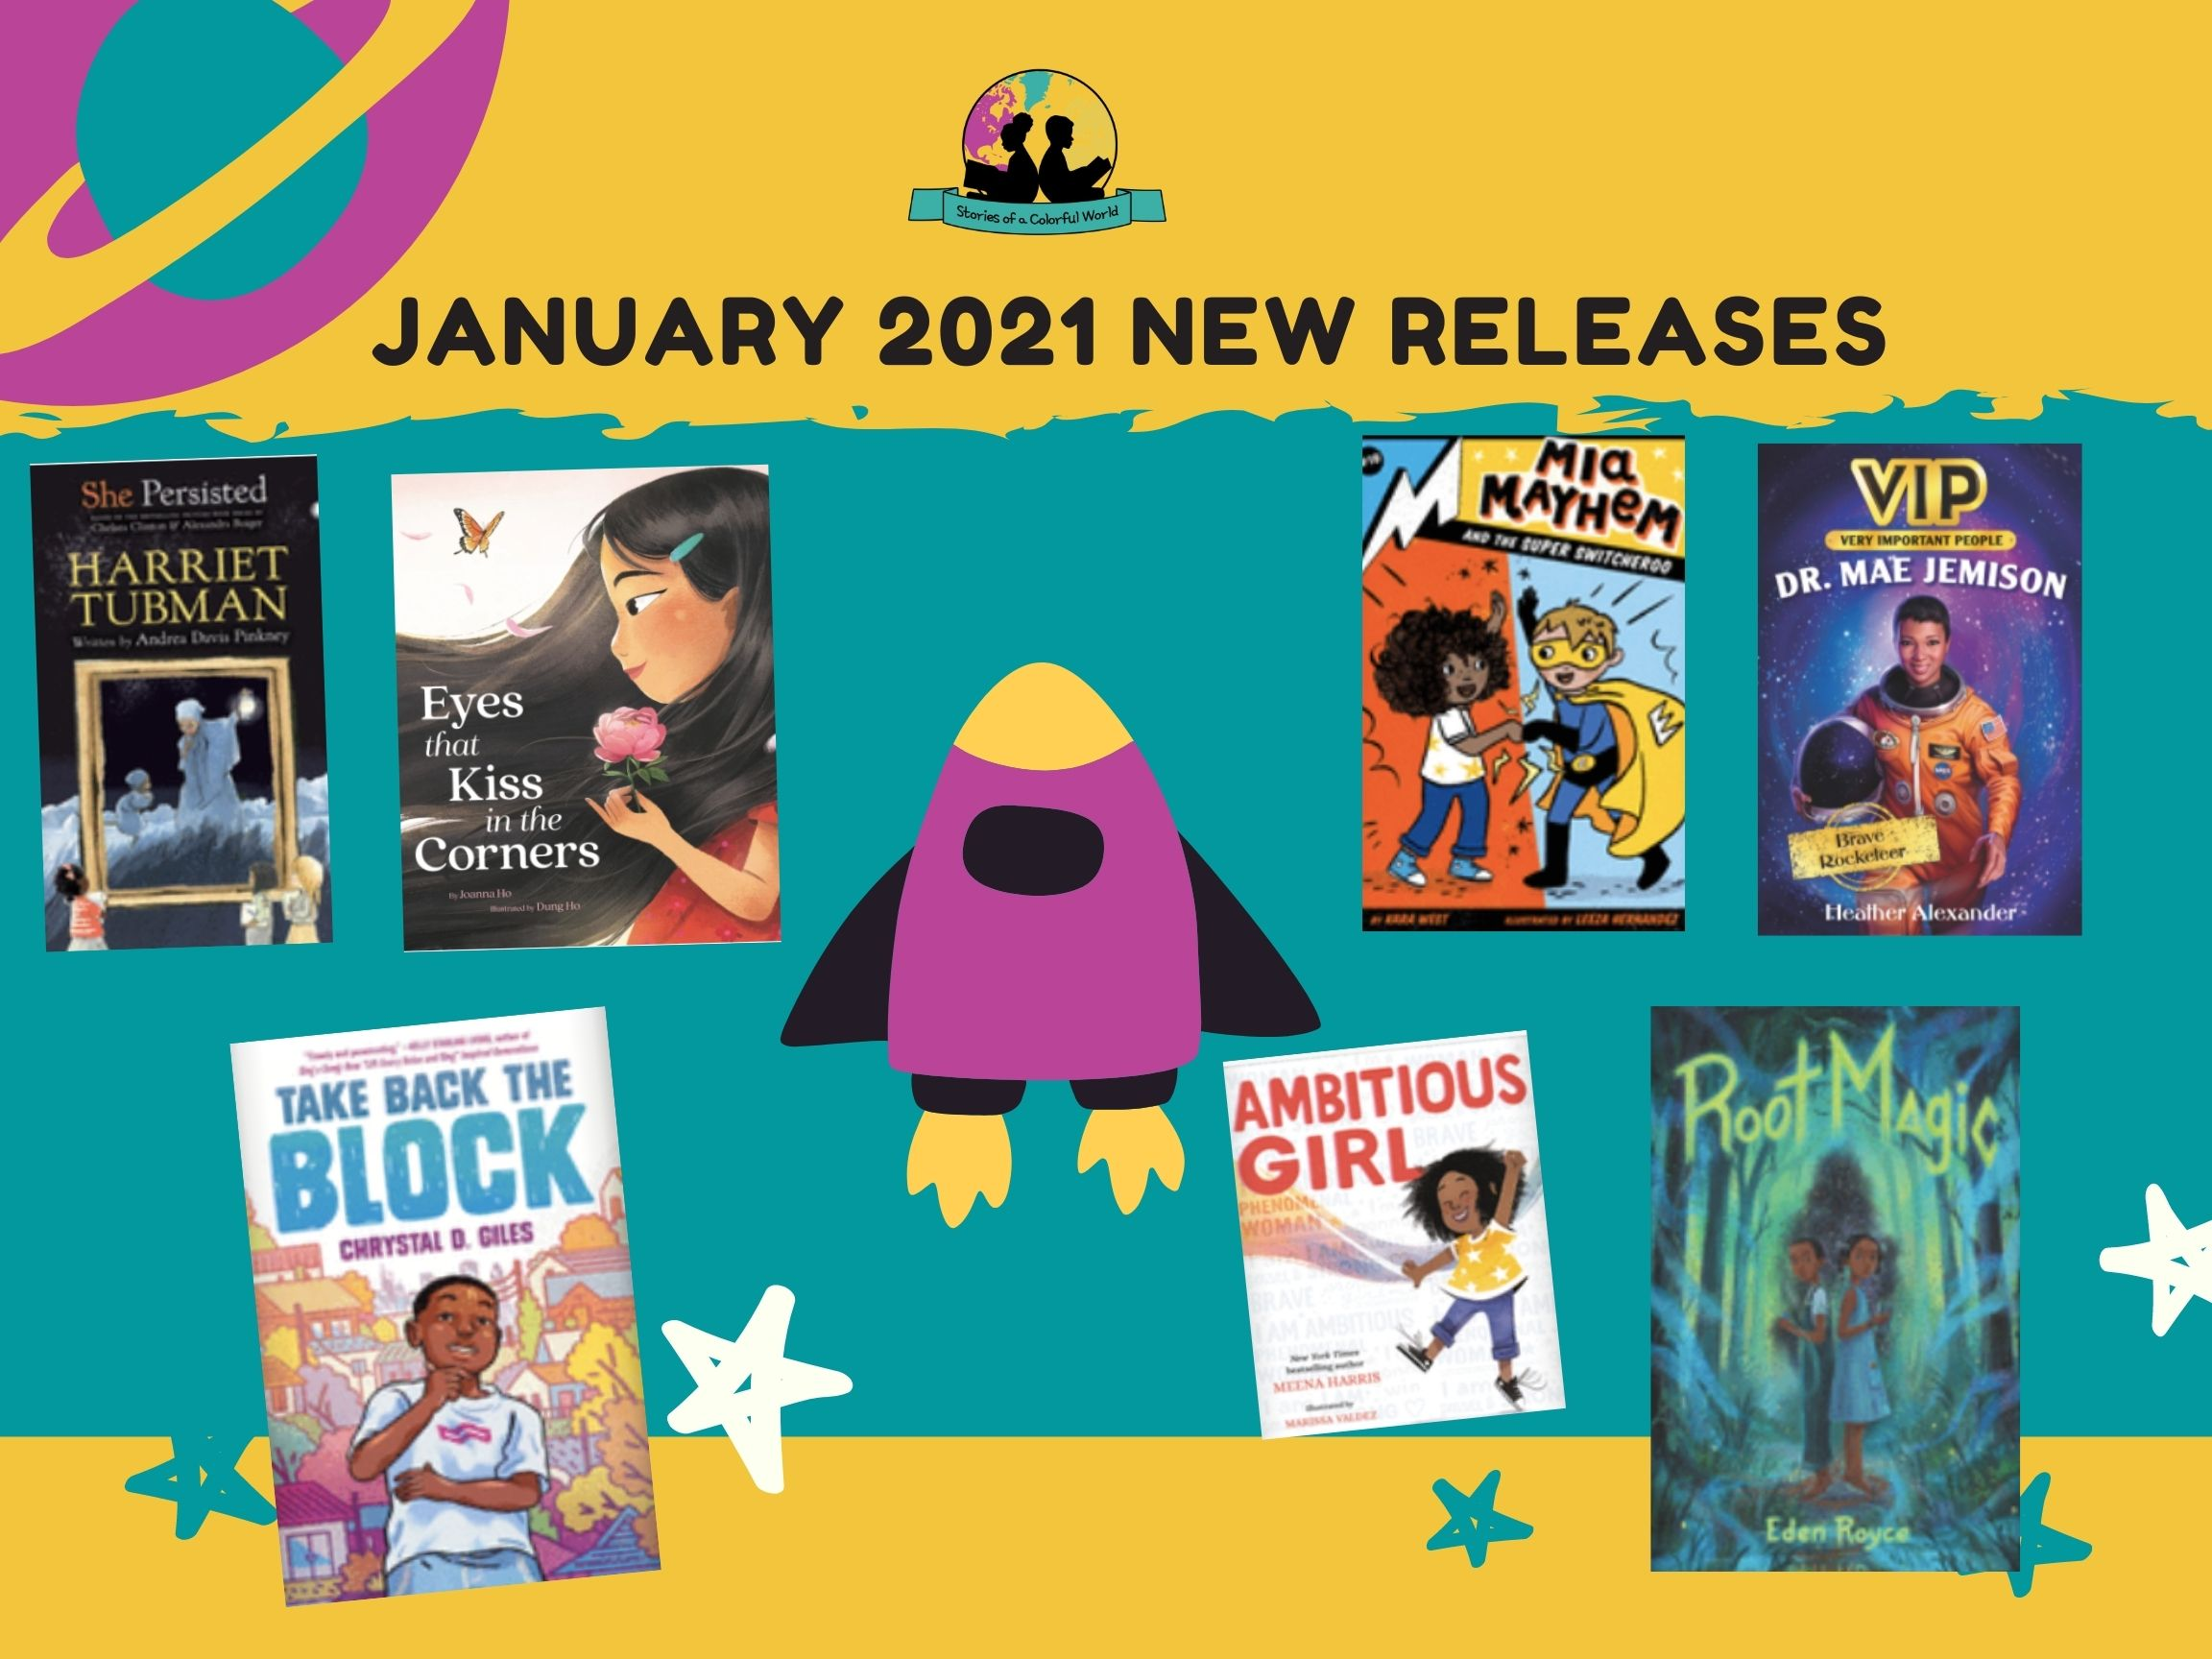 January 2021 New Book Releases